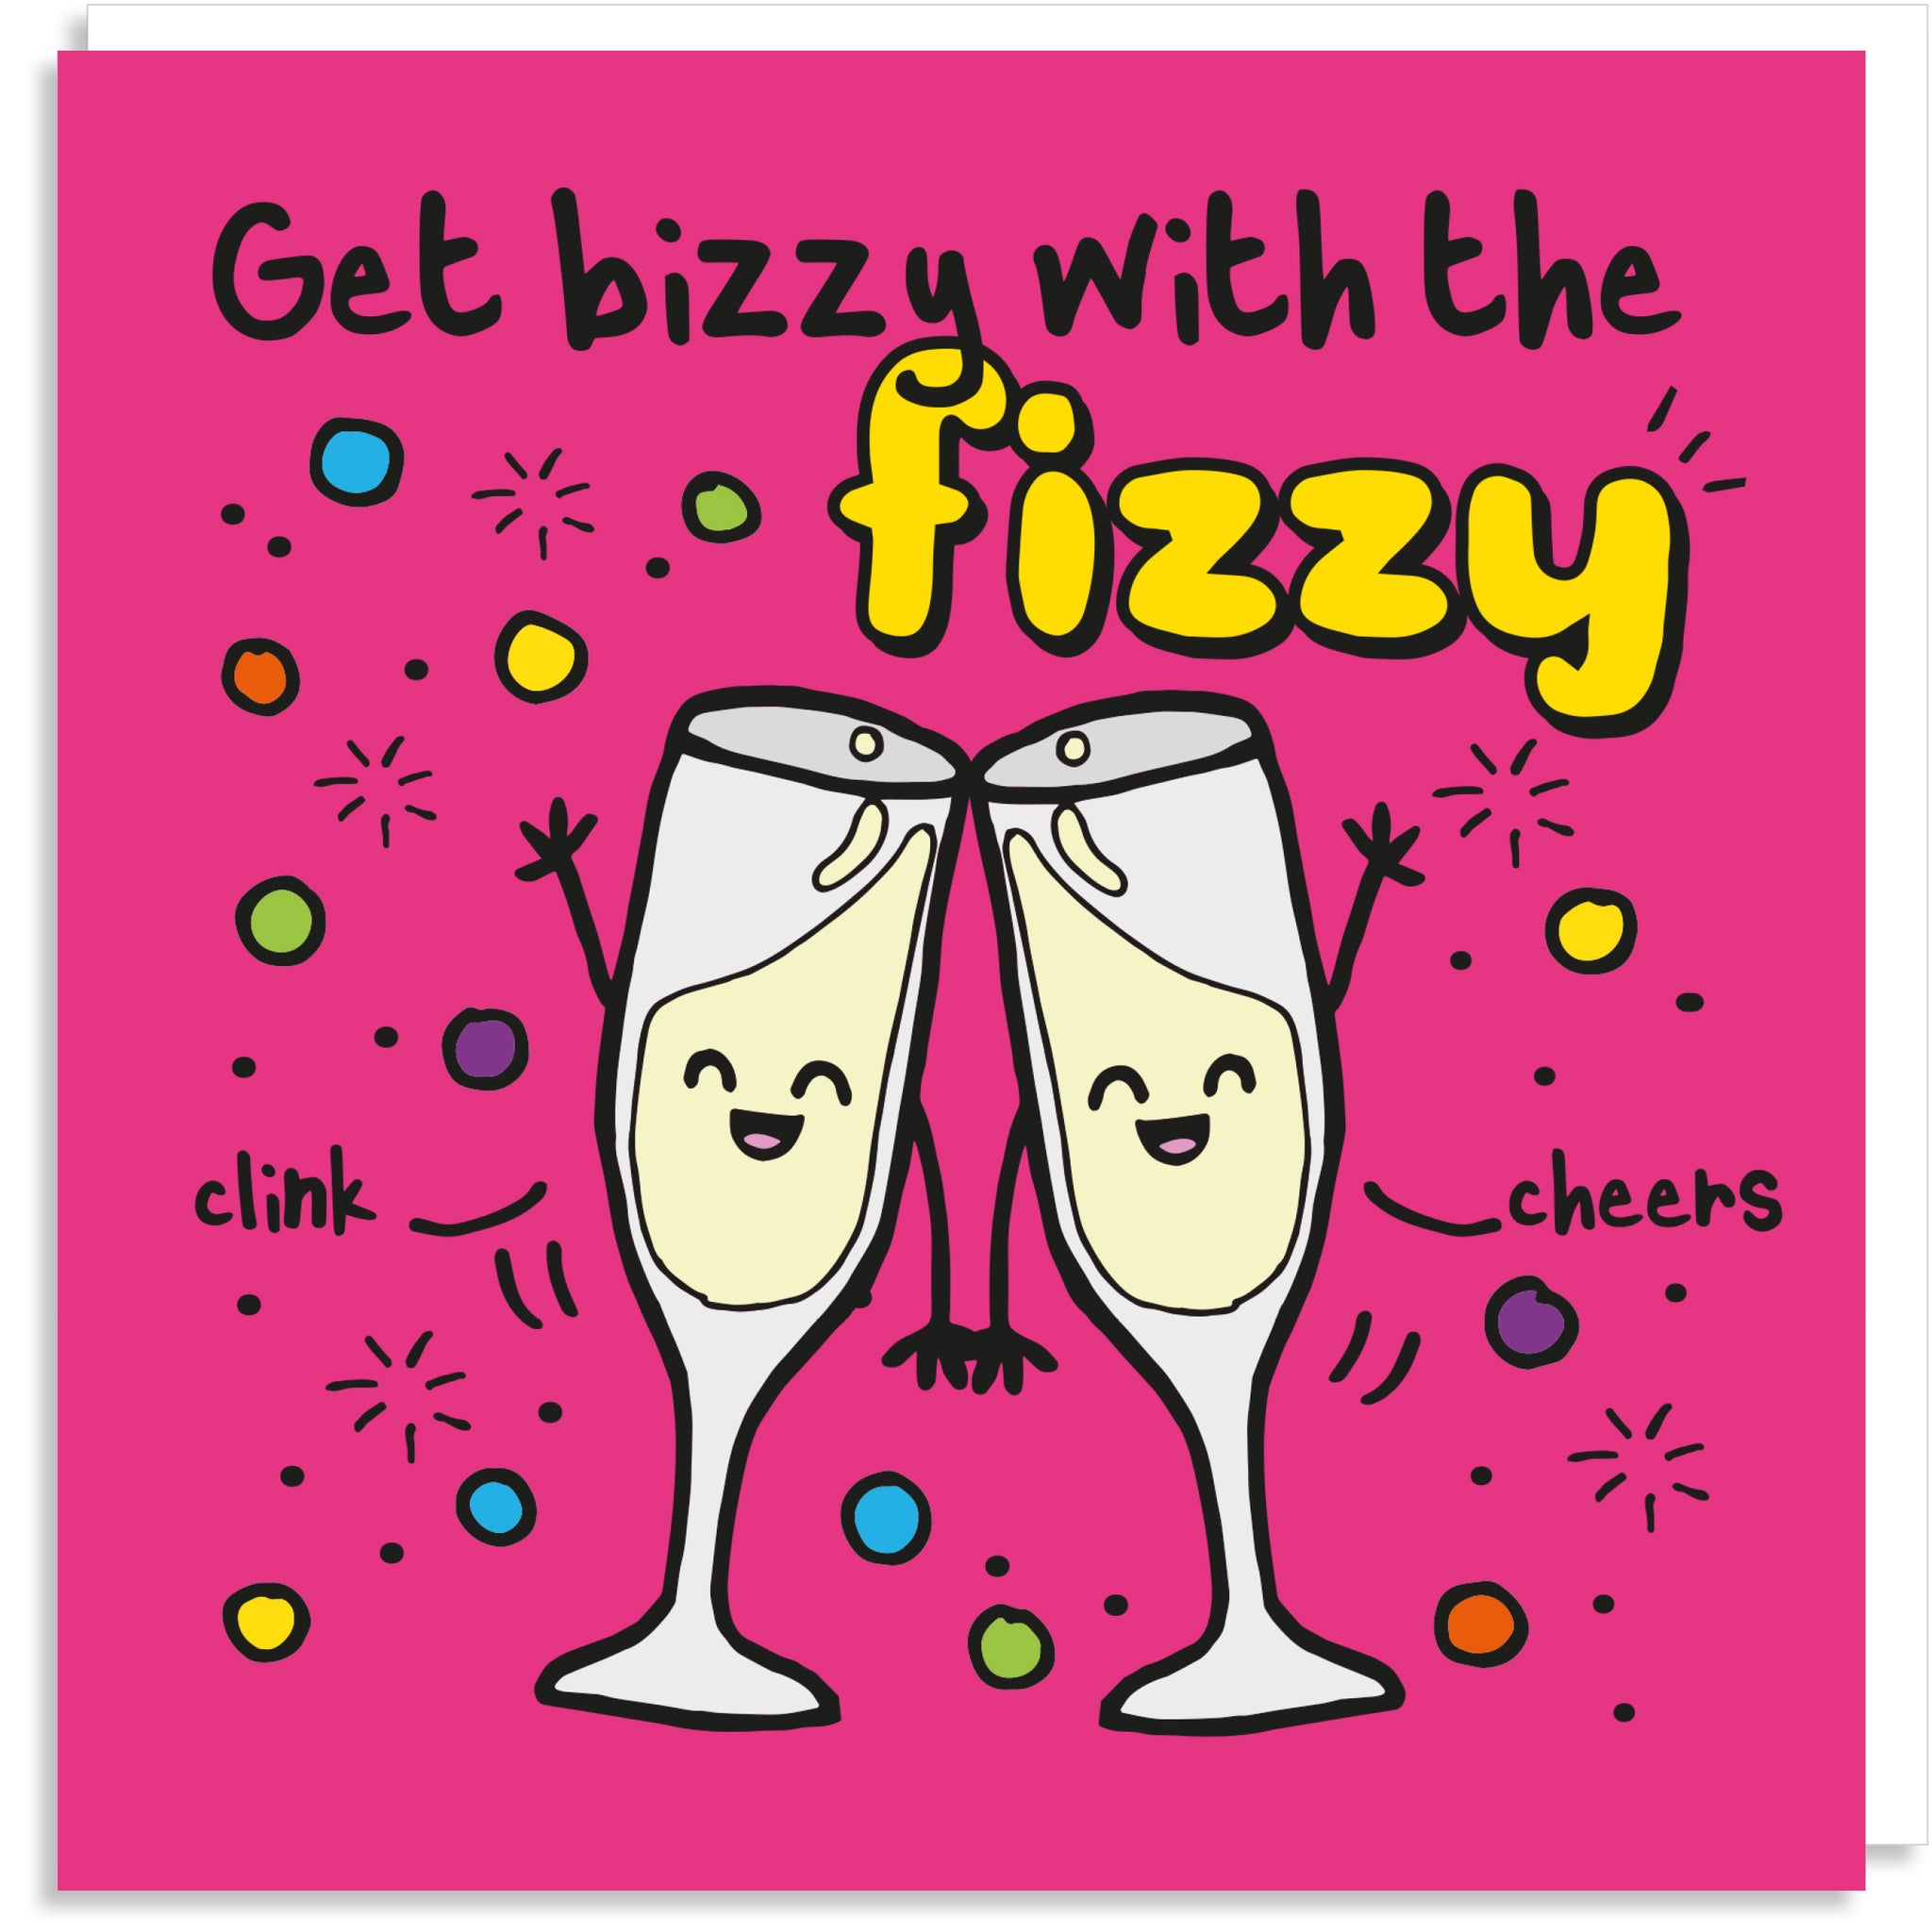 Get bizzy with the fizzy greeting card